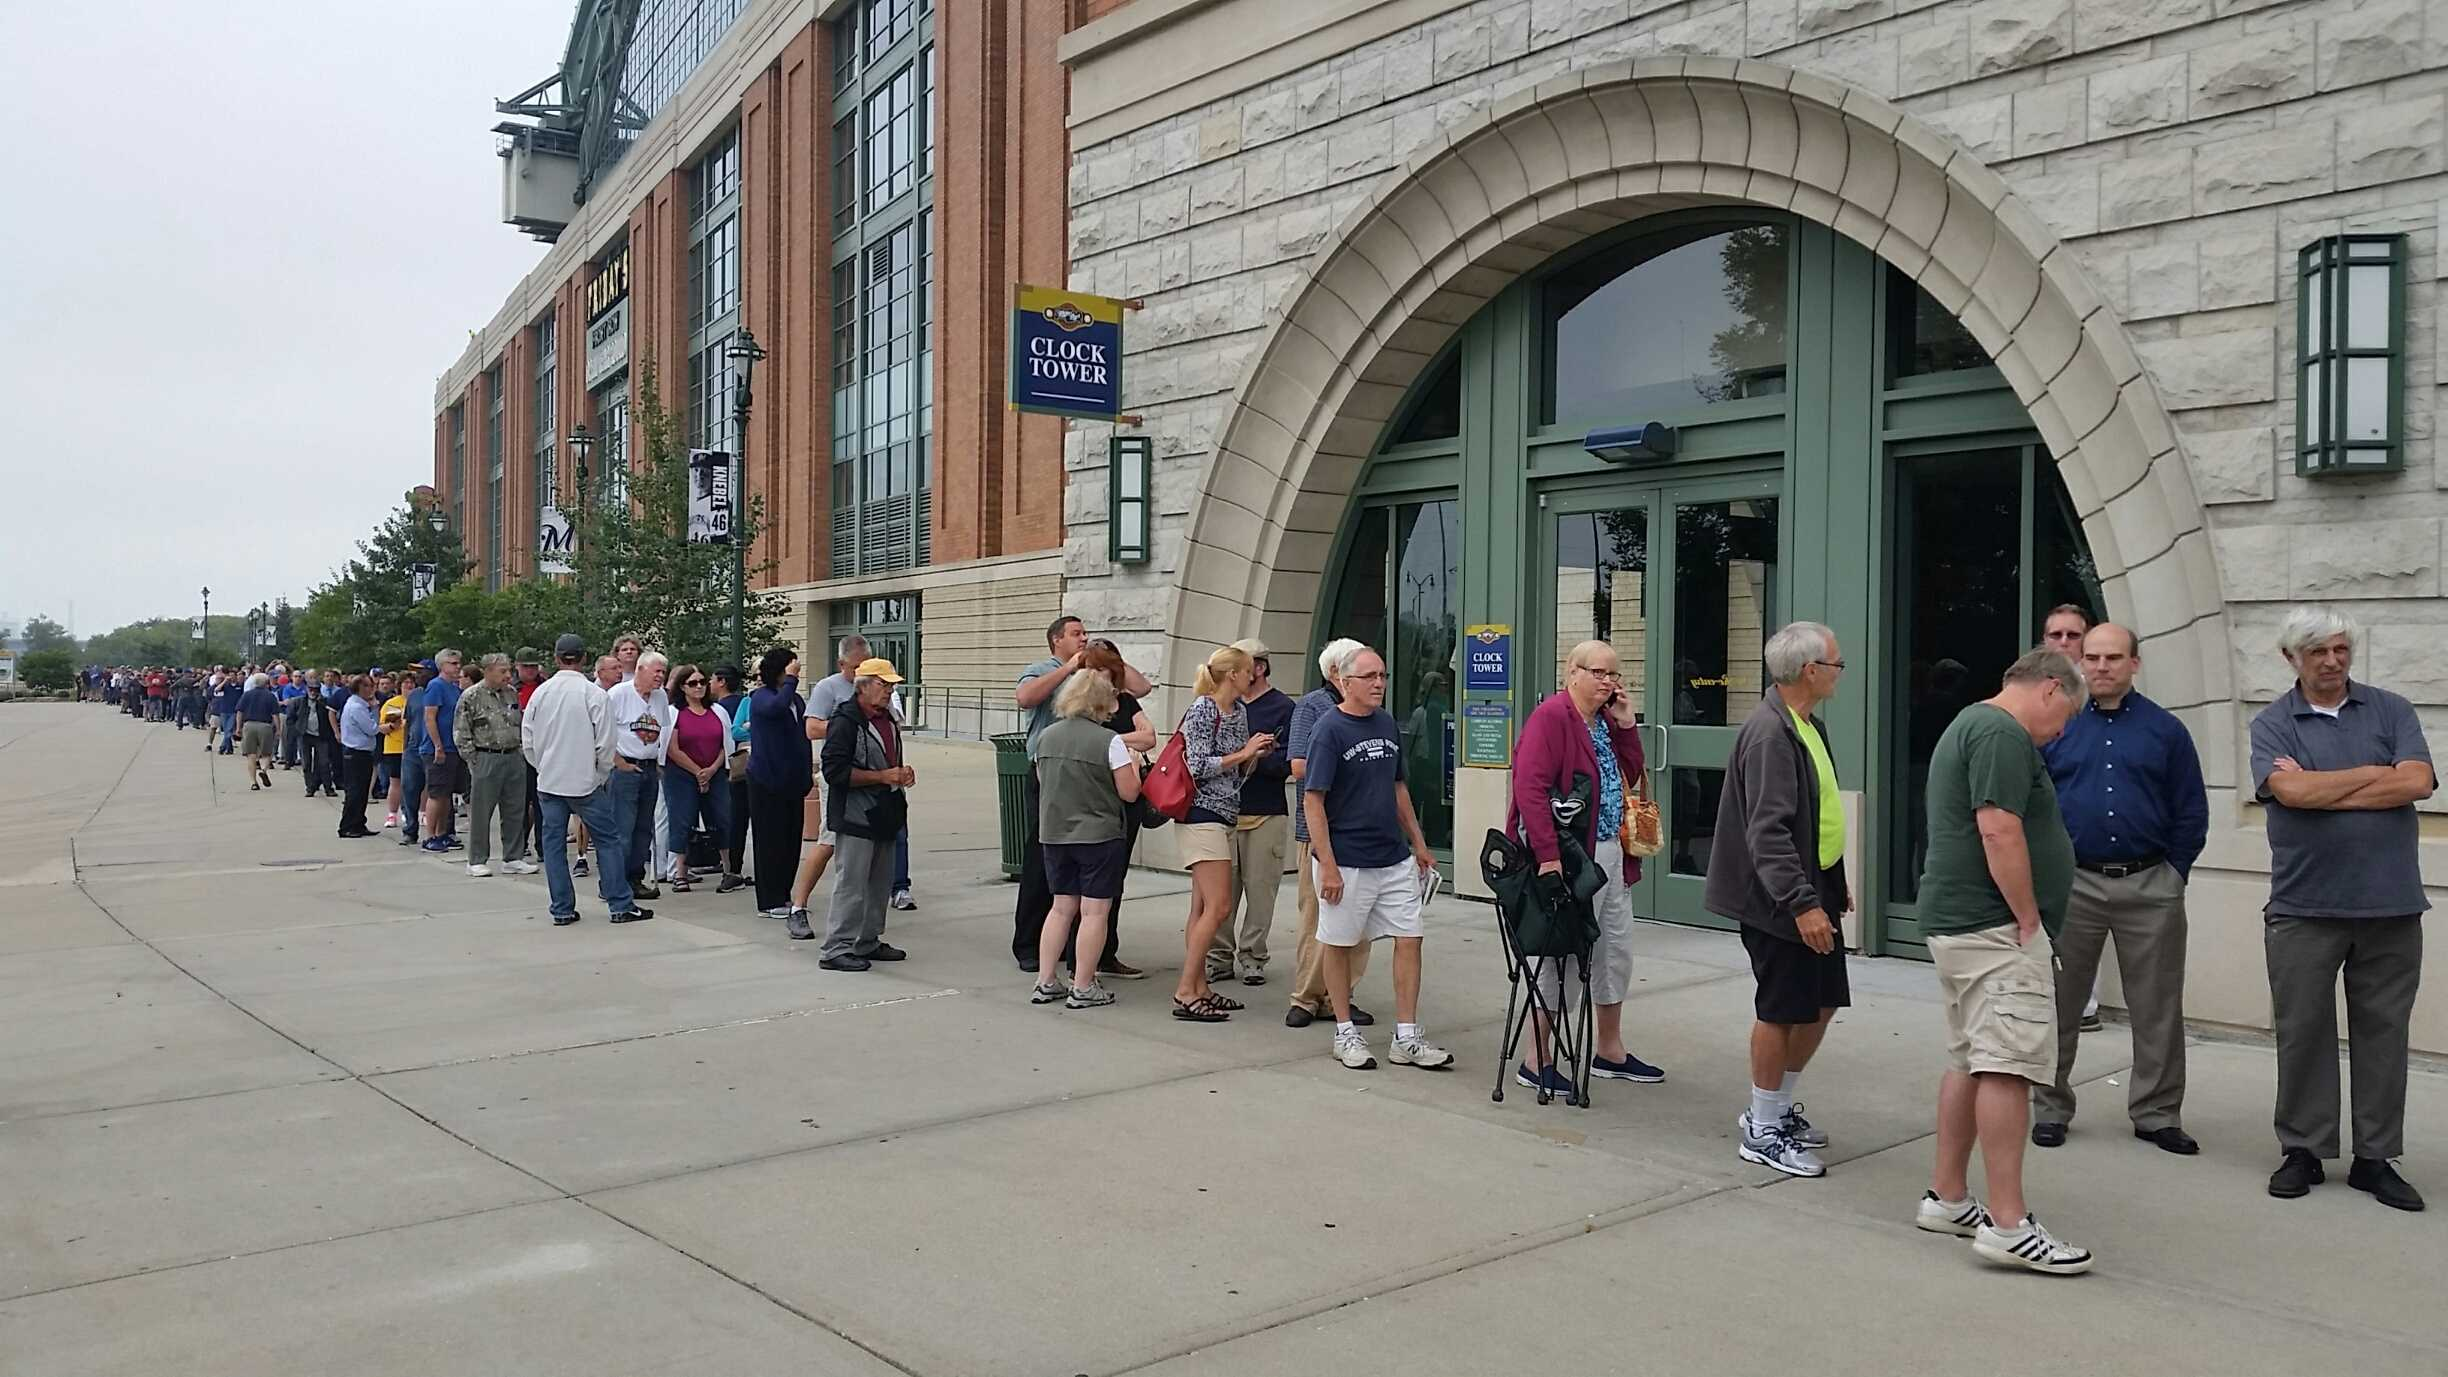 People line up for Brewers-Marlins tickets